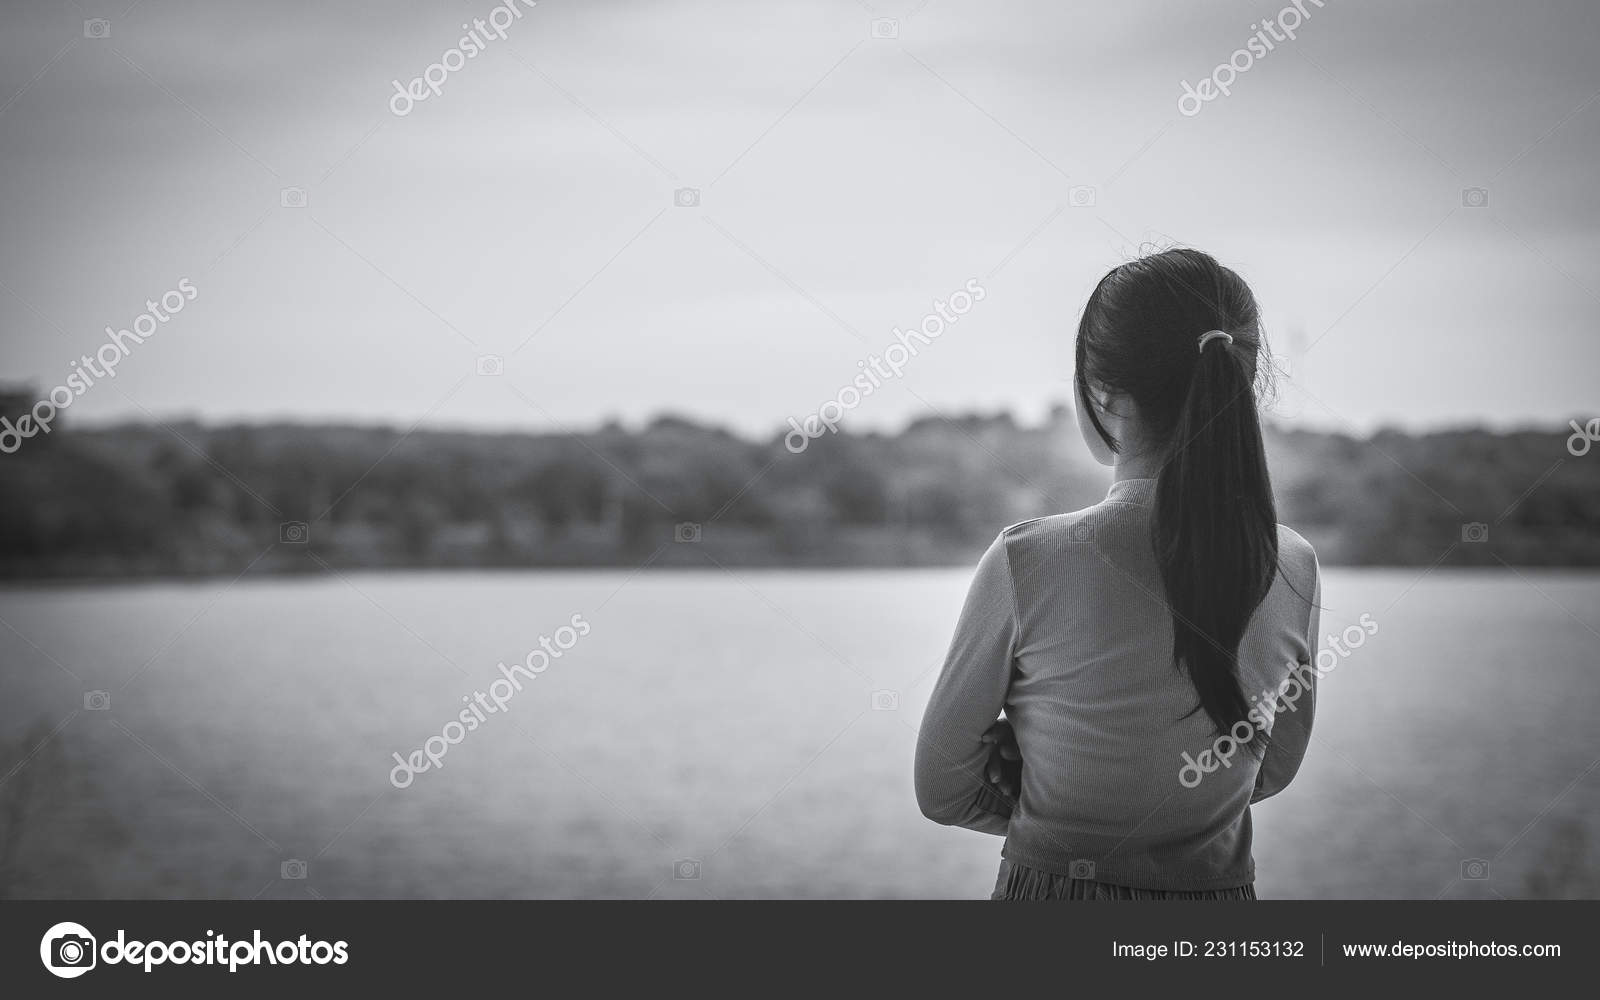 Black and white lonely woman standing alone beside the river lonely sadness concept stock image